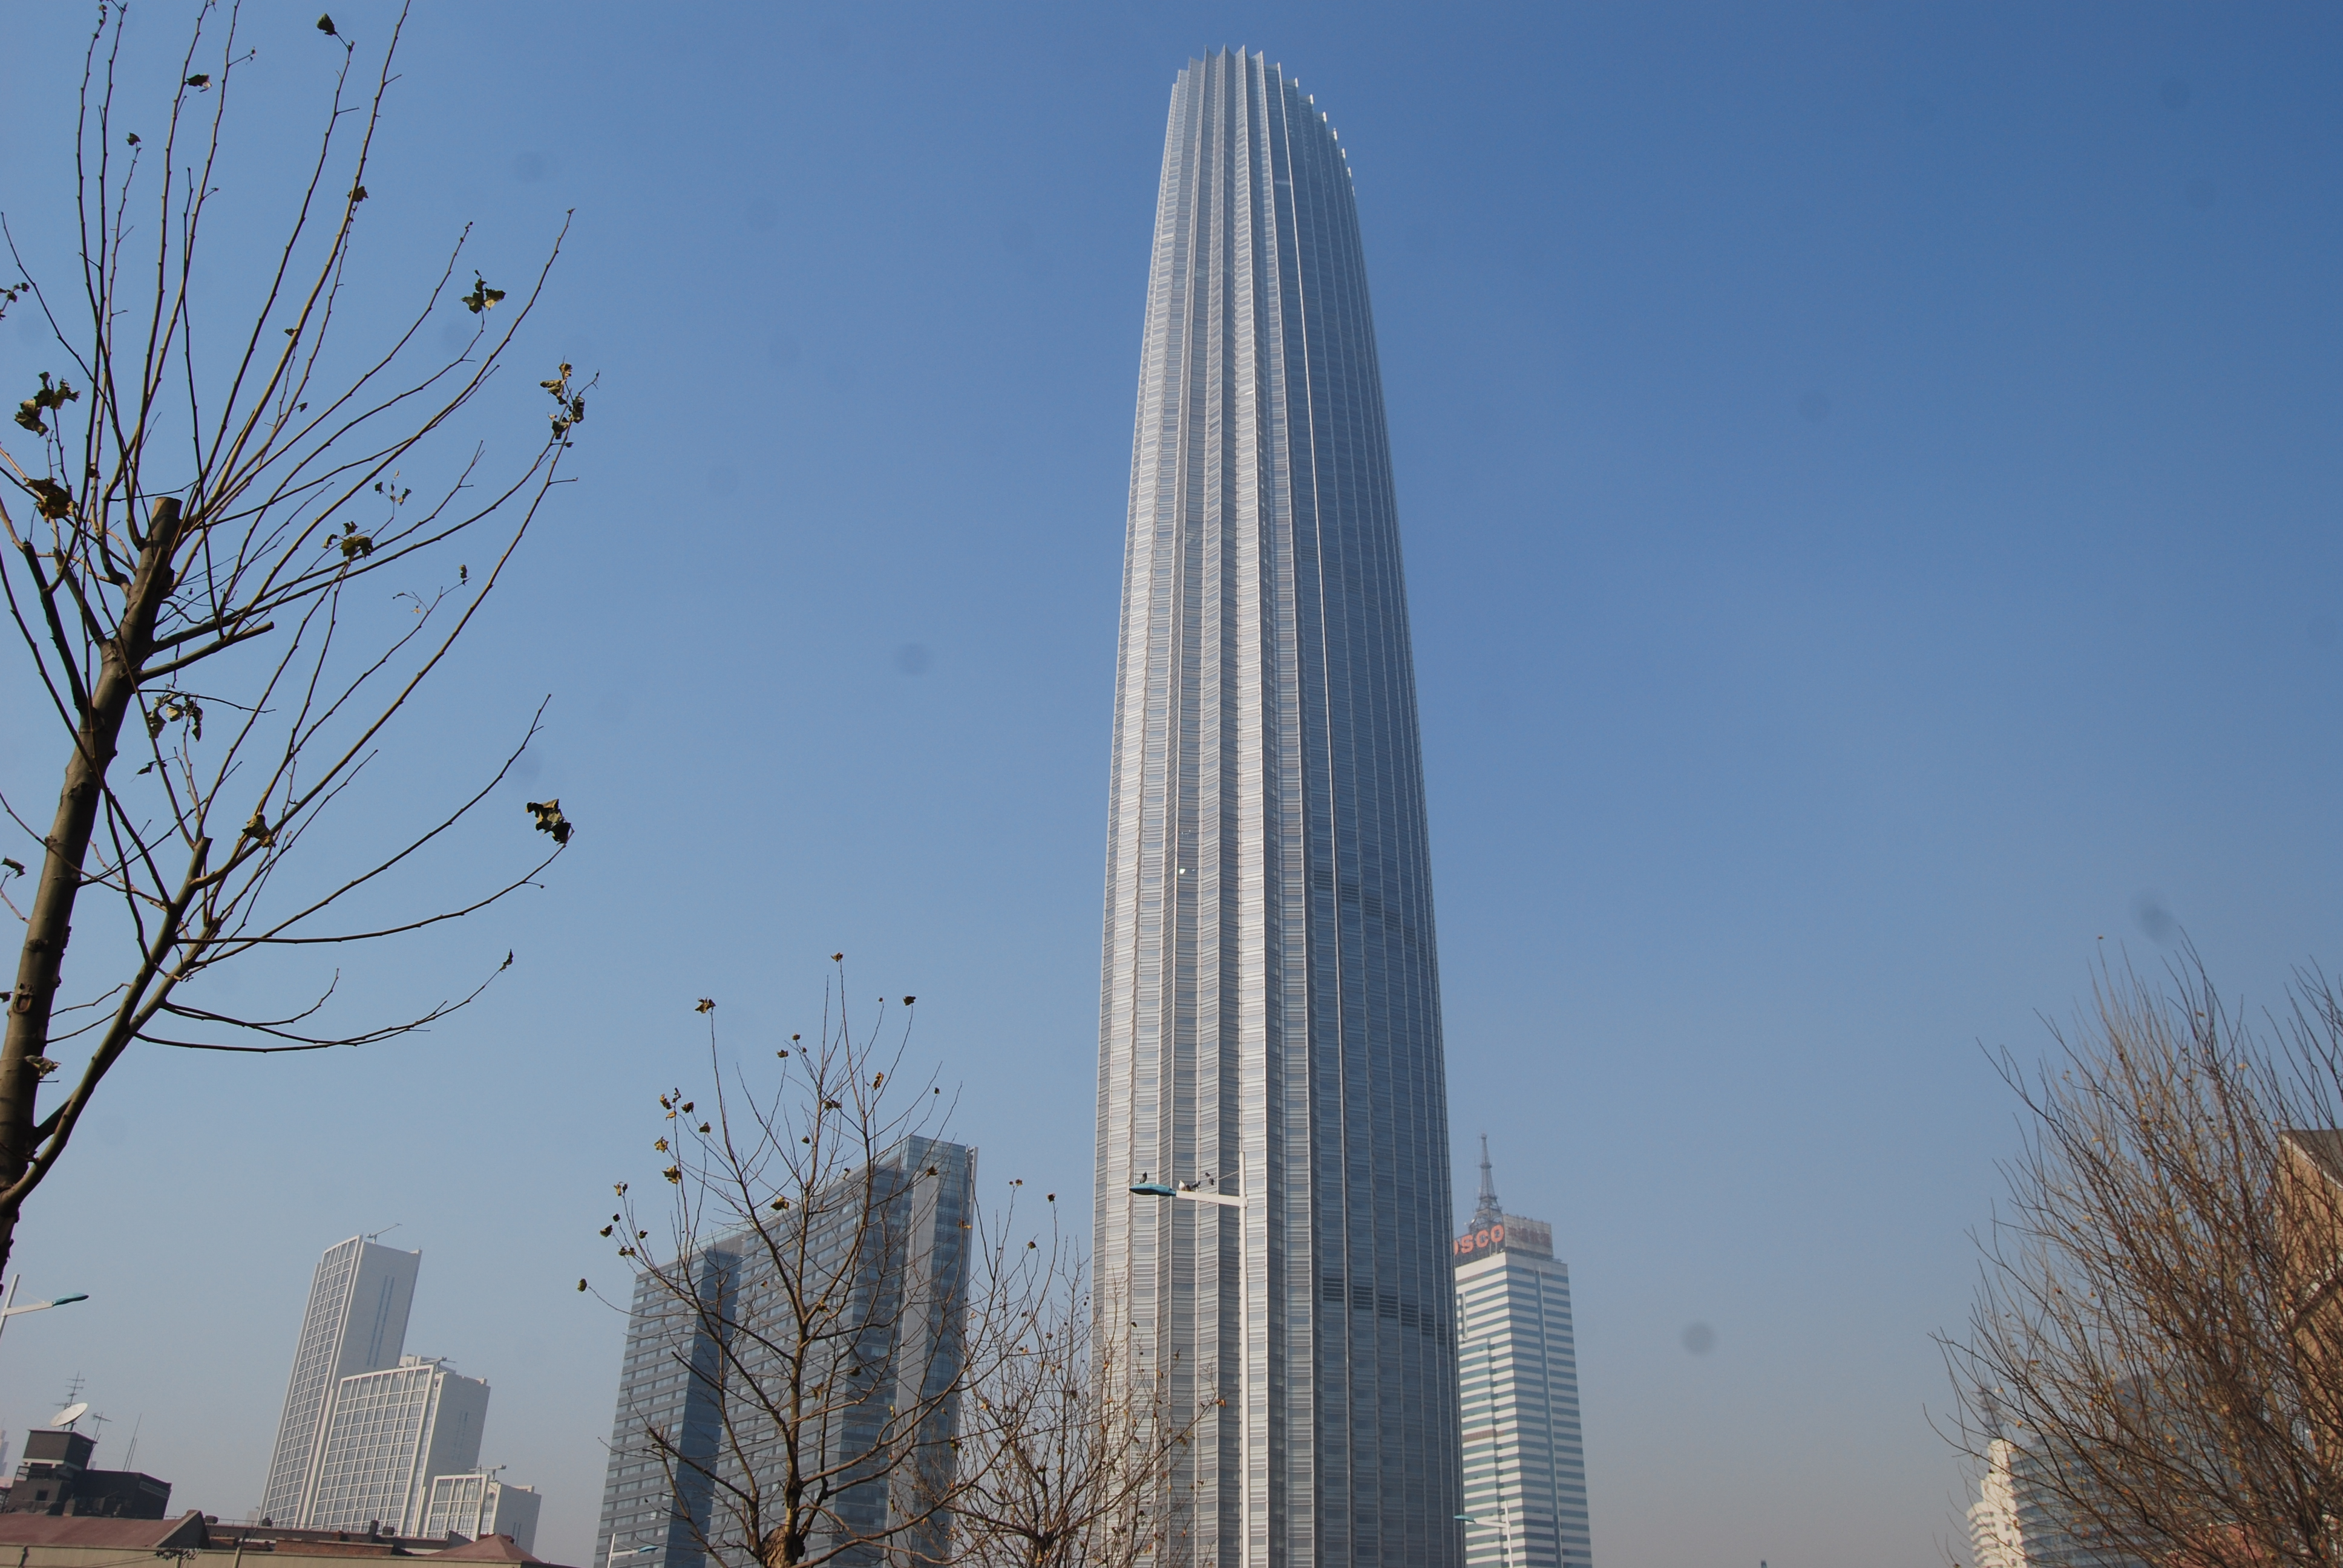 Depiction of Tianjin World Financial Center